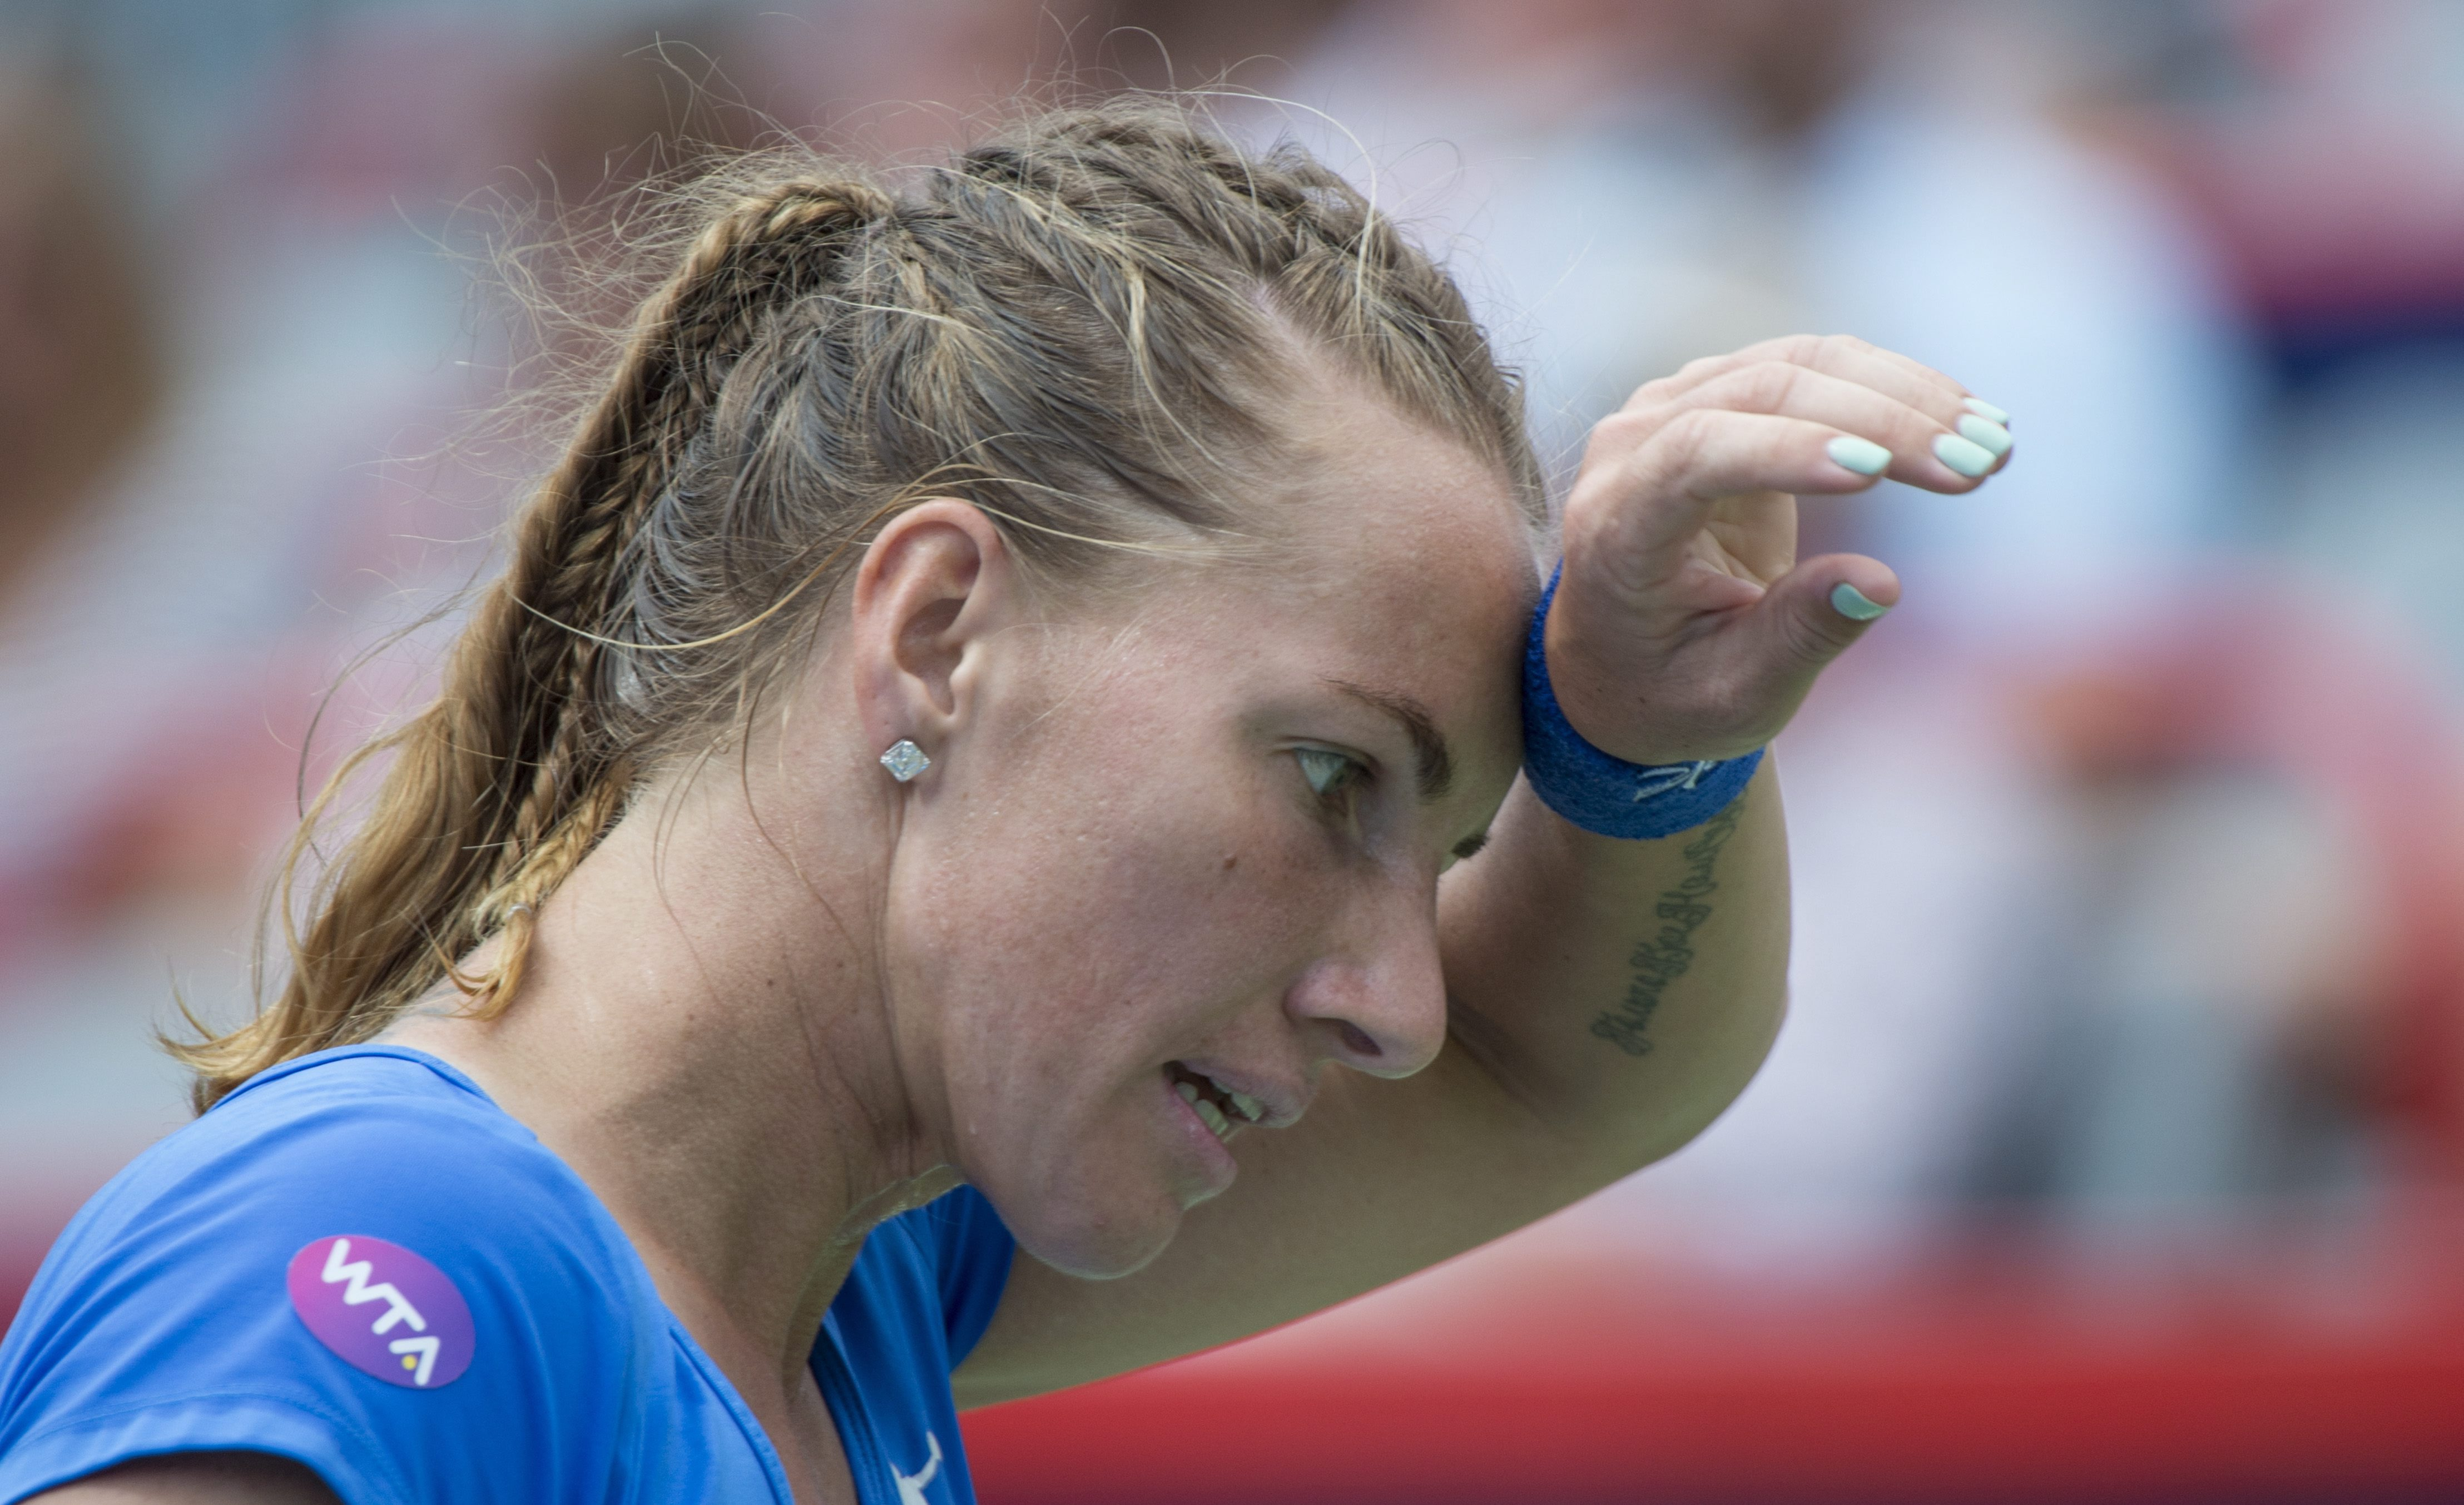 Svetlana Kuznetsova, of Russia, wipes her forehead during her match against Simona Halep, of Romania at the Rogers Cup tennis tournament, Friday, July 29, 2016 in Montreal. (Paul Chiasson/The Canadian Press via AP)